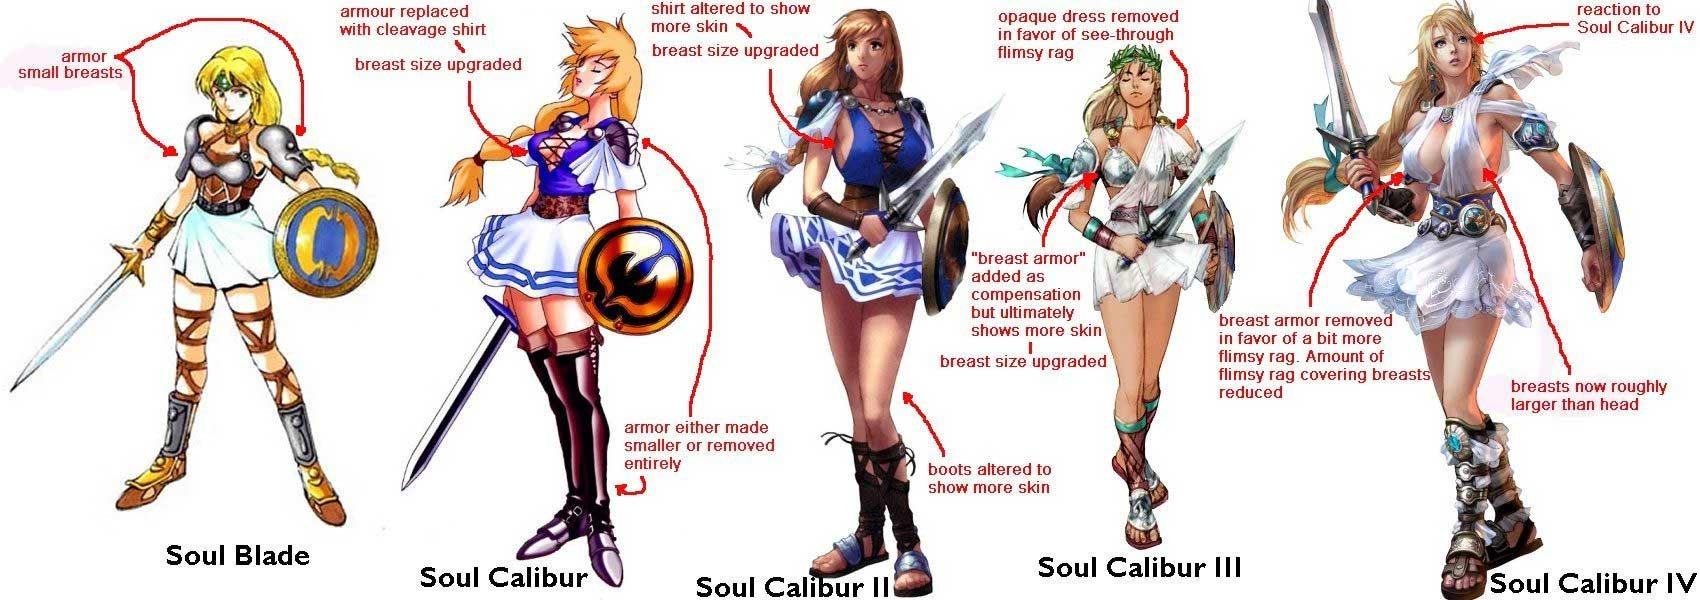 Soul calibur breast size chart essence